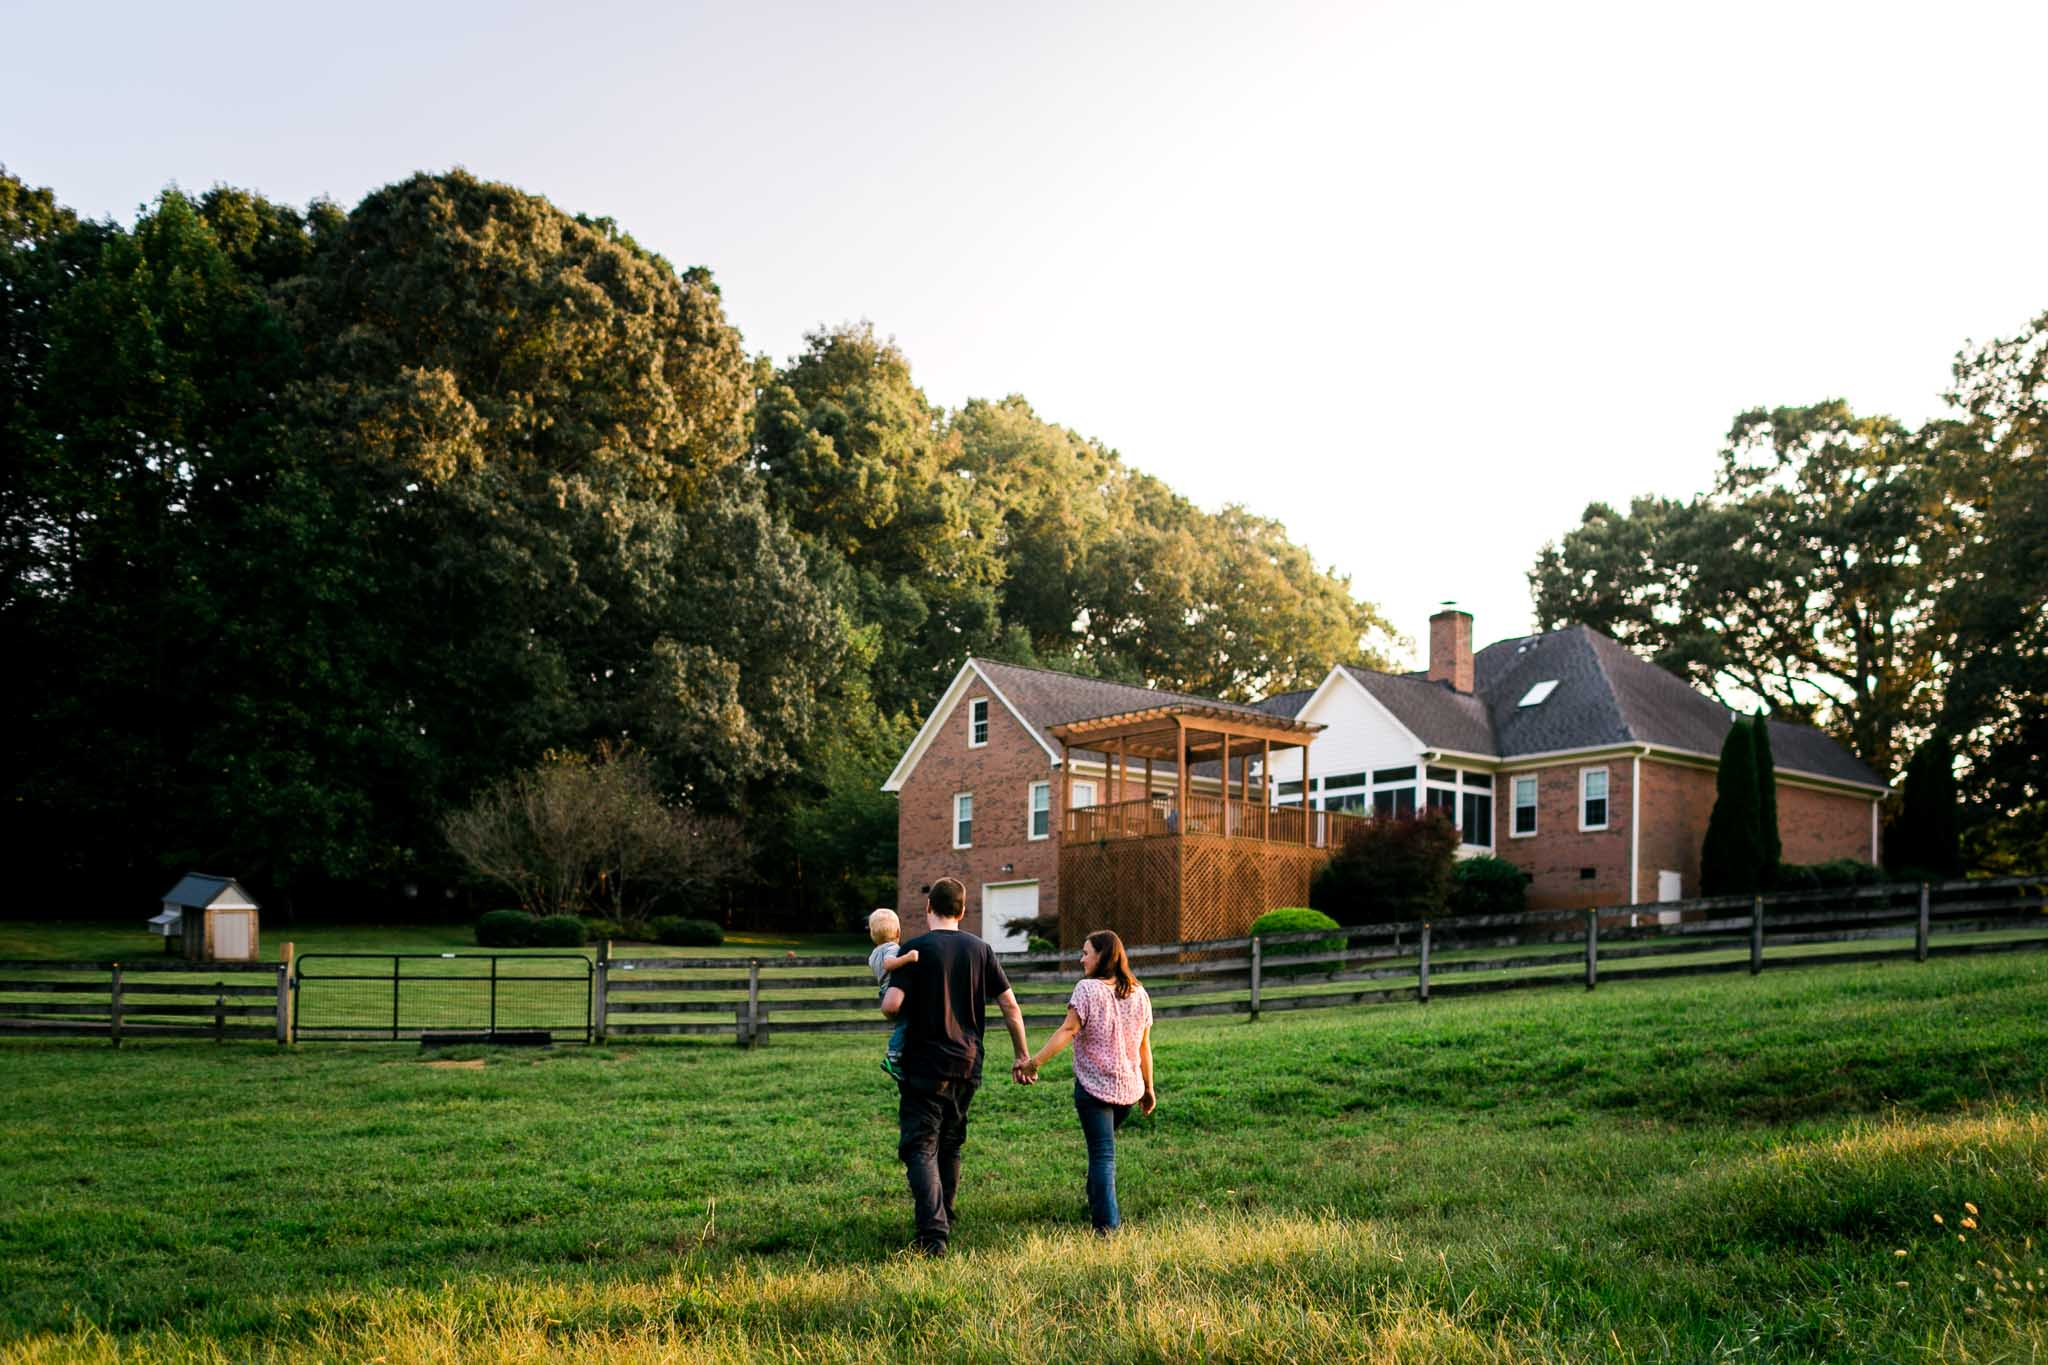 Candid lifestyle family photo | By G. Lin Photography | Durham Family Photographer